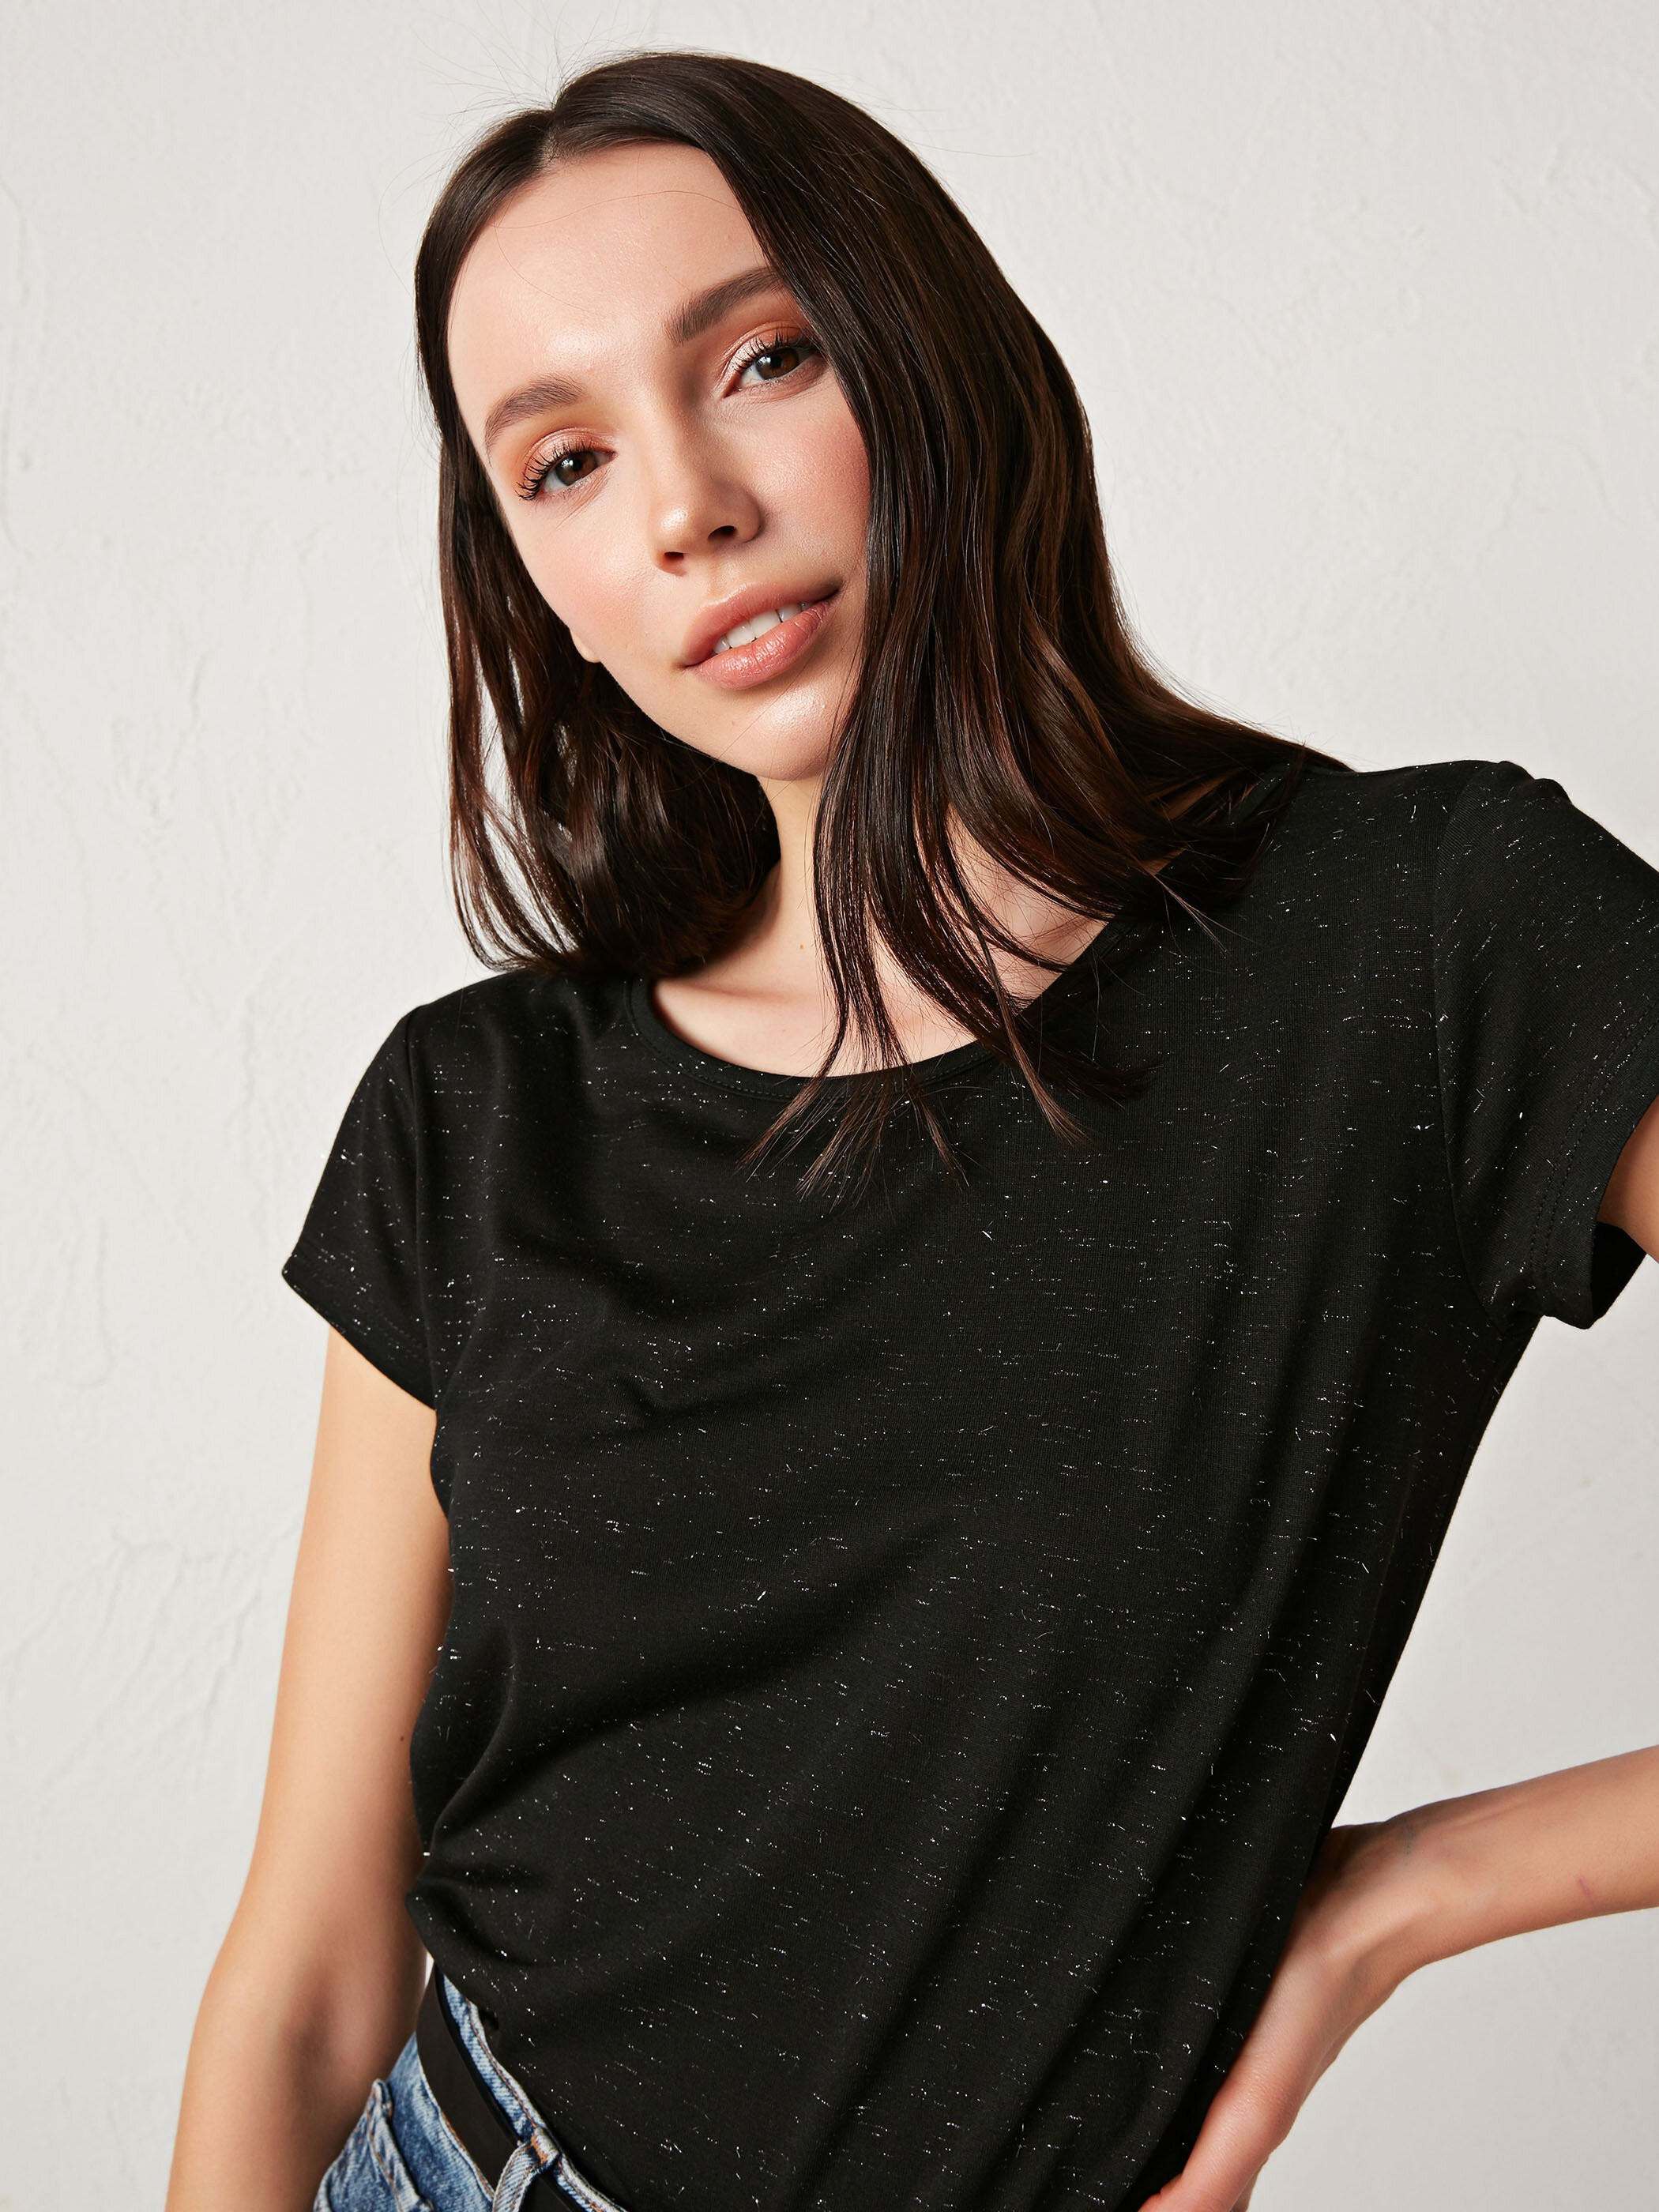 BLACK - Crew Neck Plain T-Shirt - S16994Z8